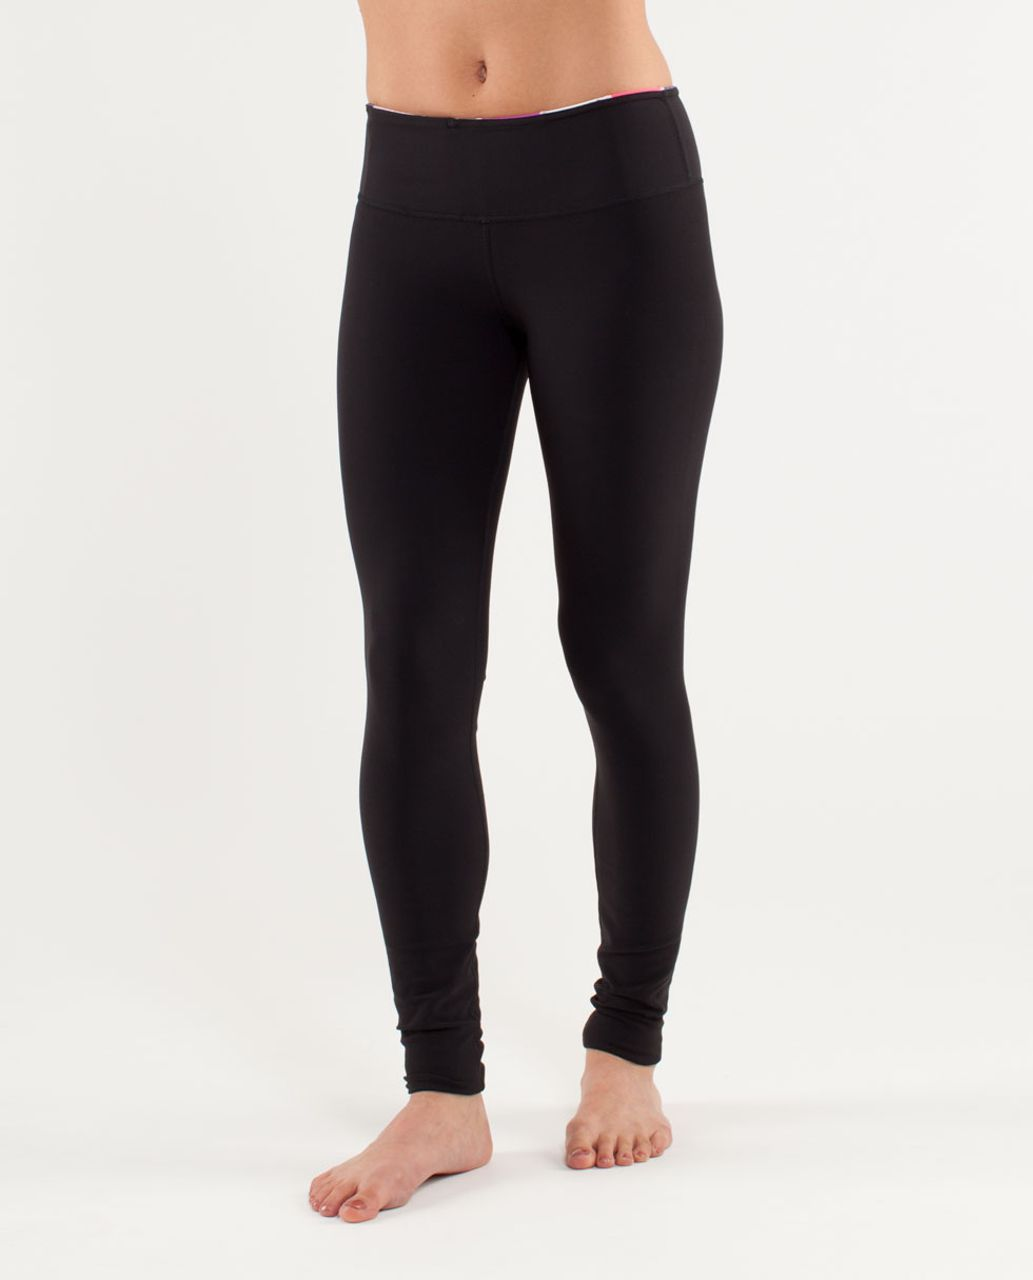 Lululemon Wunder Under Pant - Black /  Quilting Spring 10 /  Black